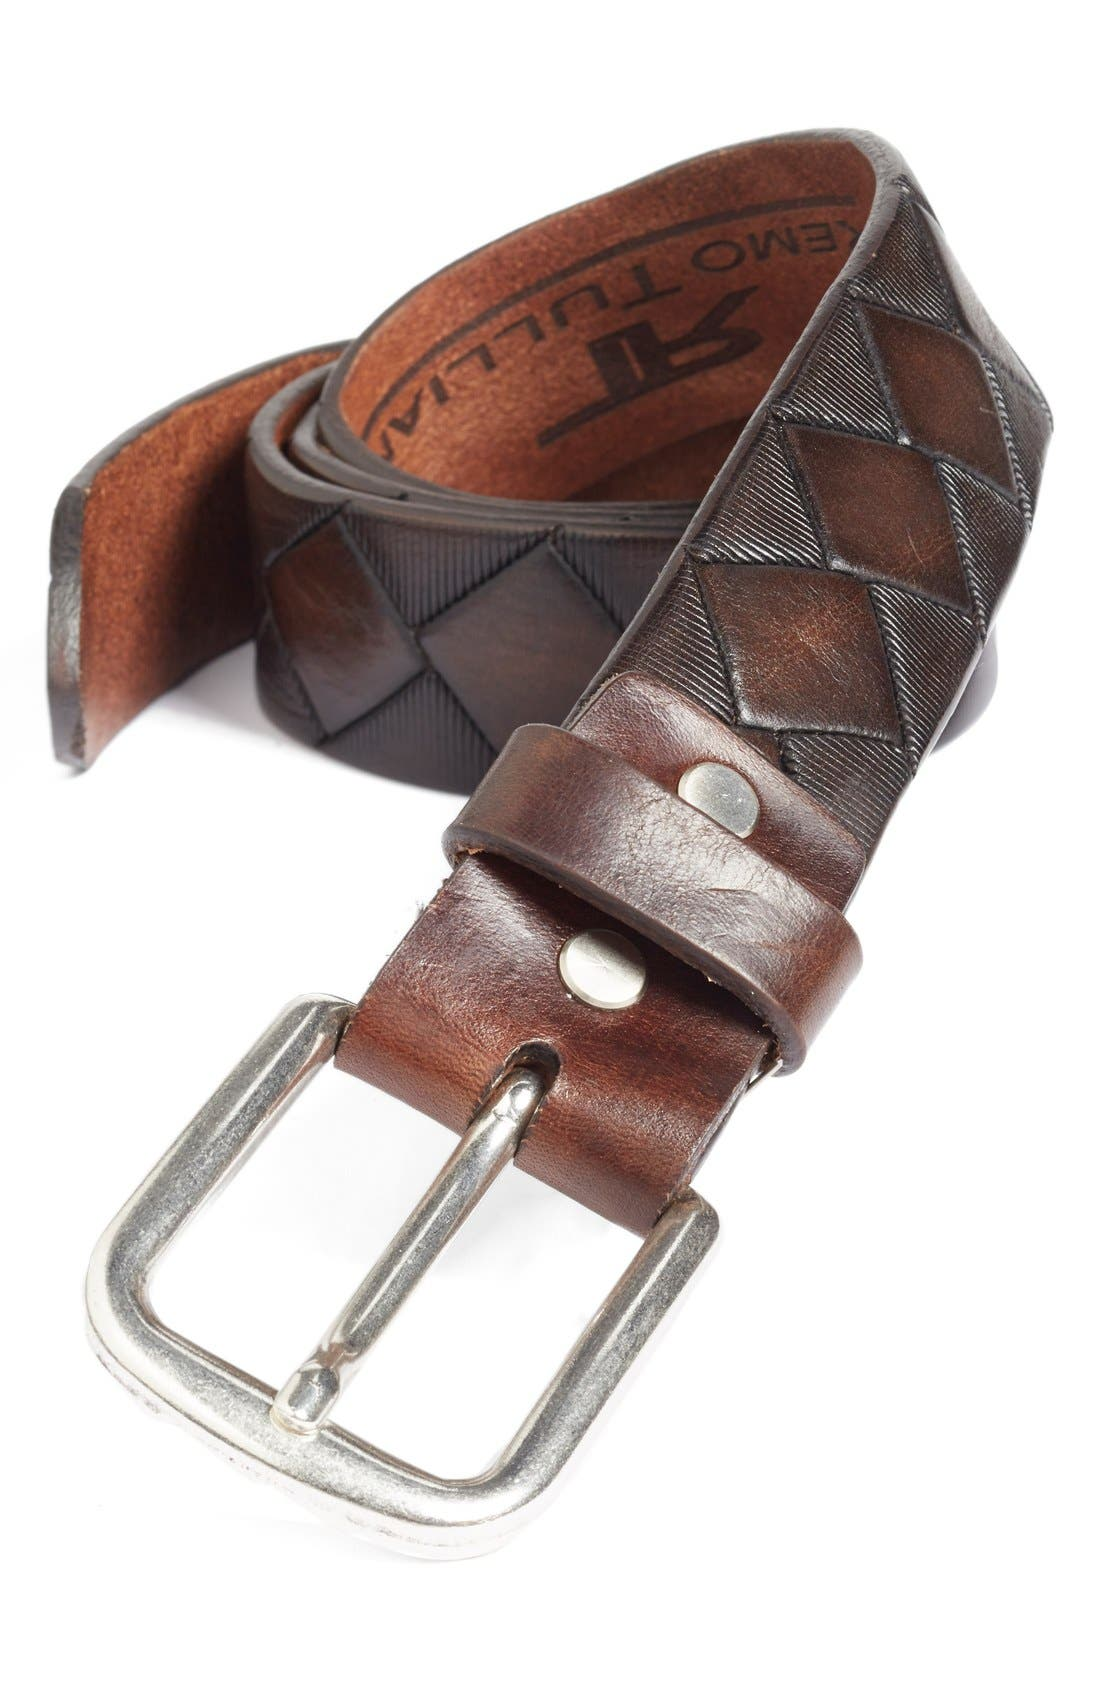 REMO TULLIANI 'Dino' Leather Belt